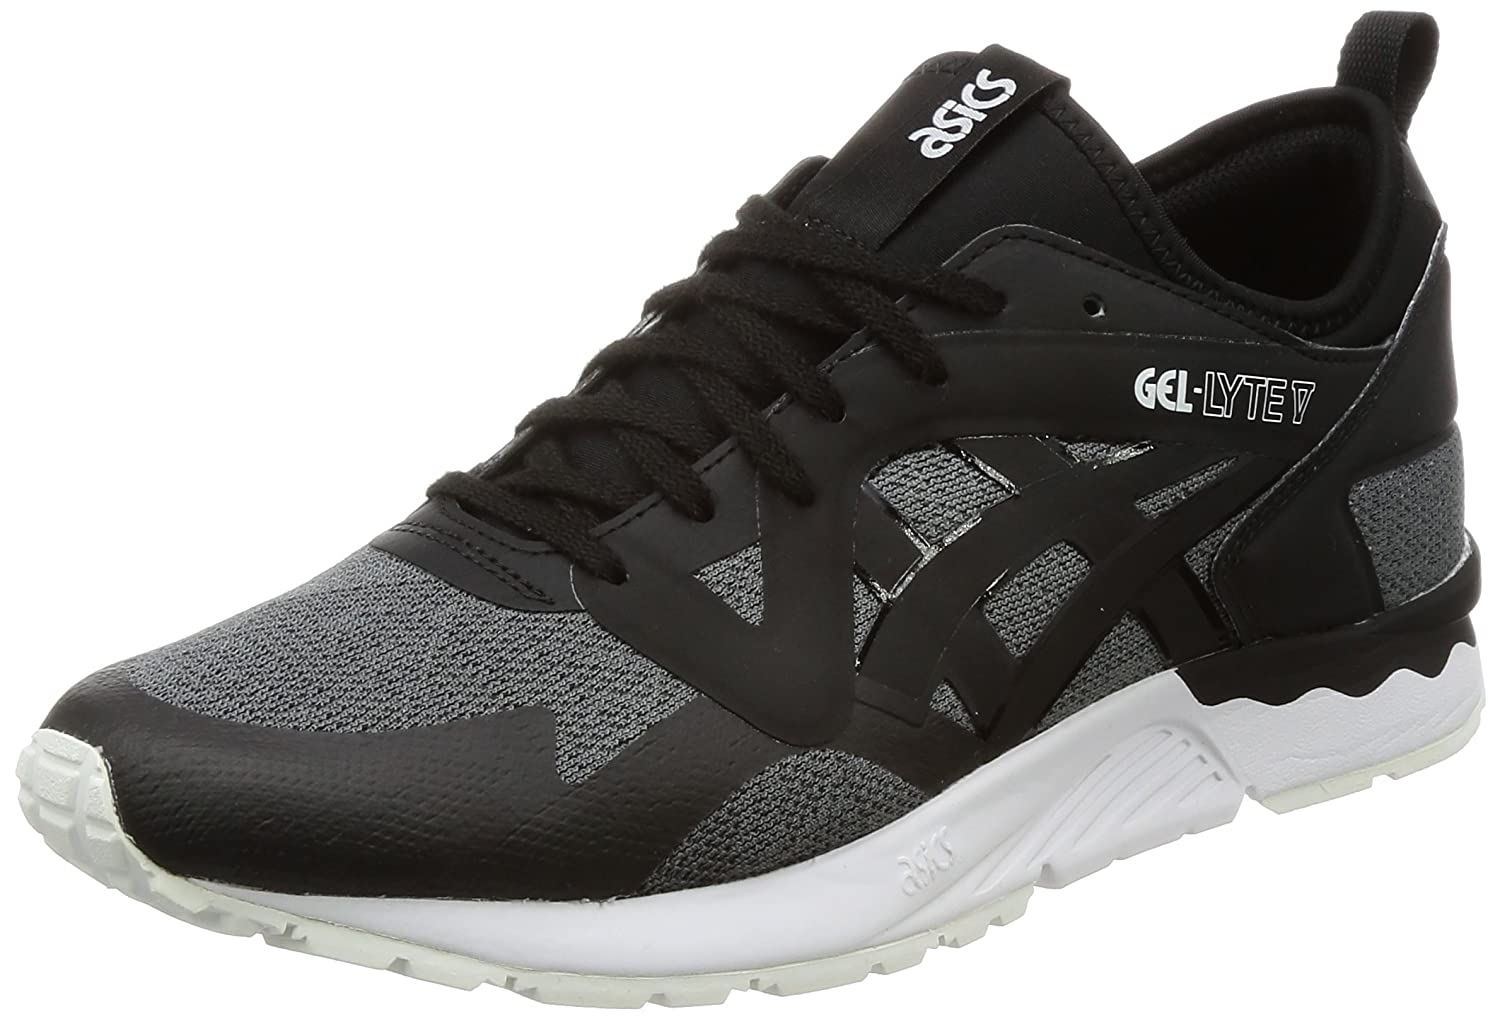 ASICS Gel-Lyte V NS H7x1y-9790, Zapatillas Unisex Adulto